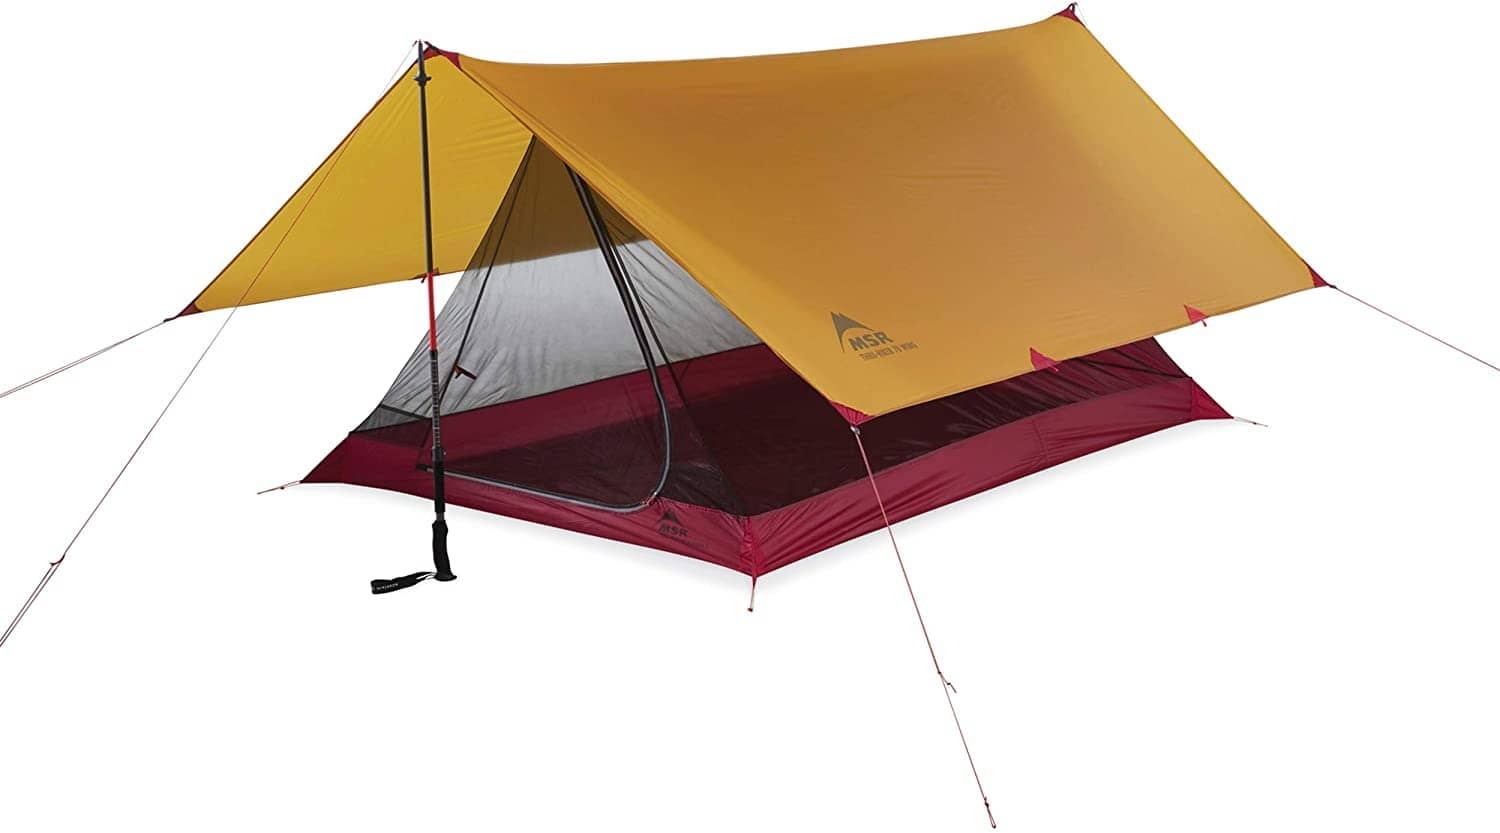 MSR Thru-Hiker Tent